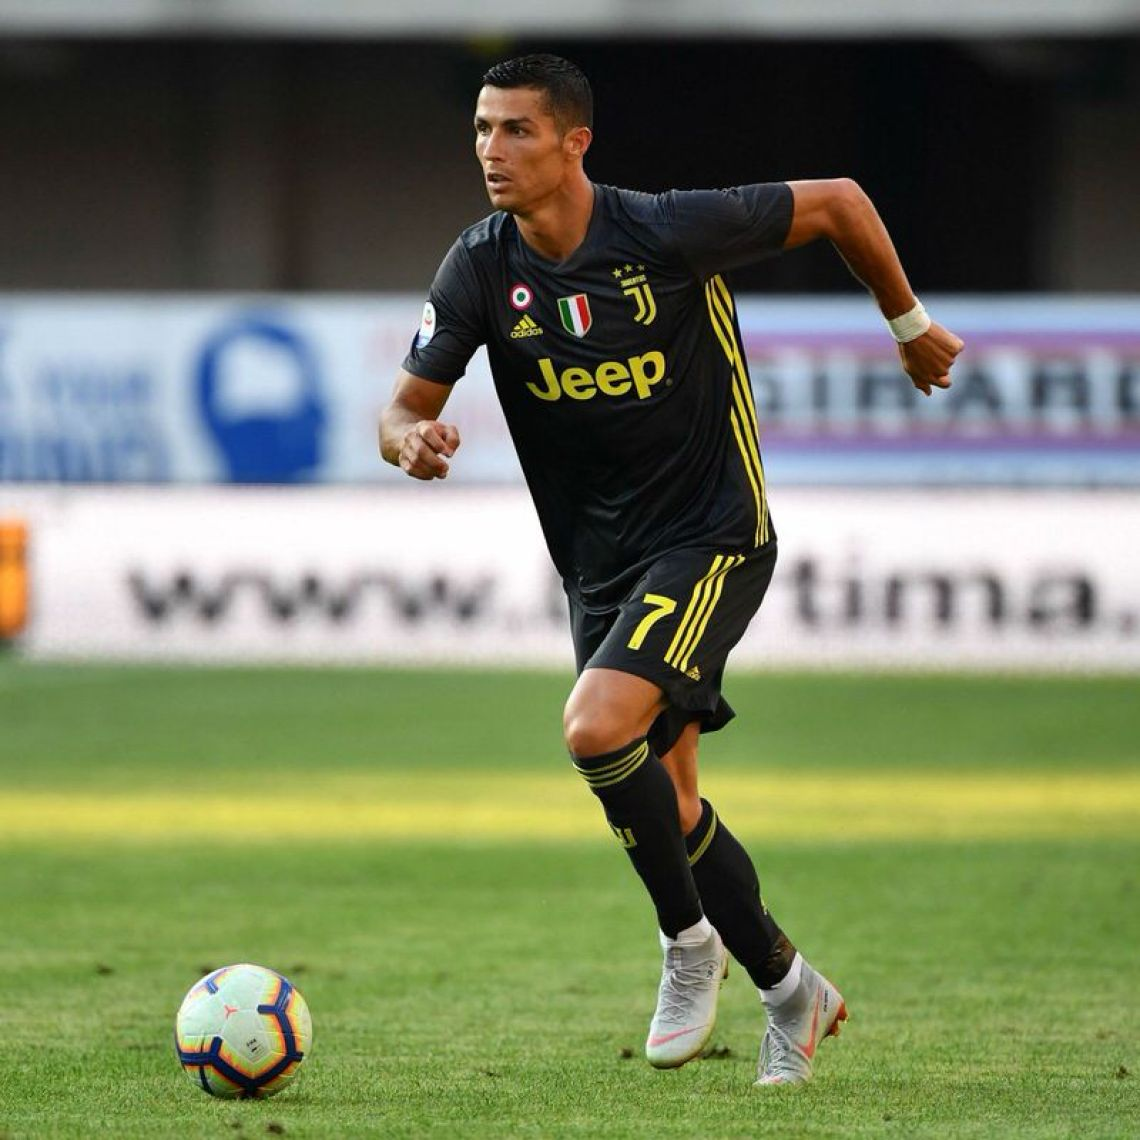 Cristian Ronaldo in the Nike Mercurial Superbly 360 via Alberto Pizzoli 0002464ae8c5e